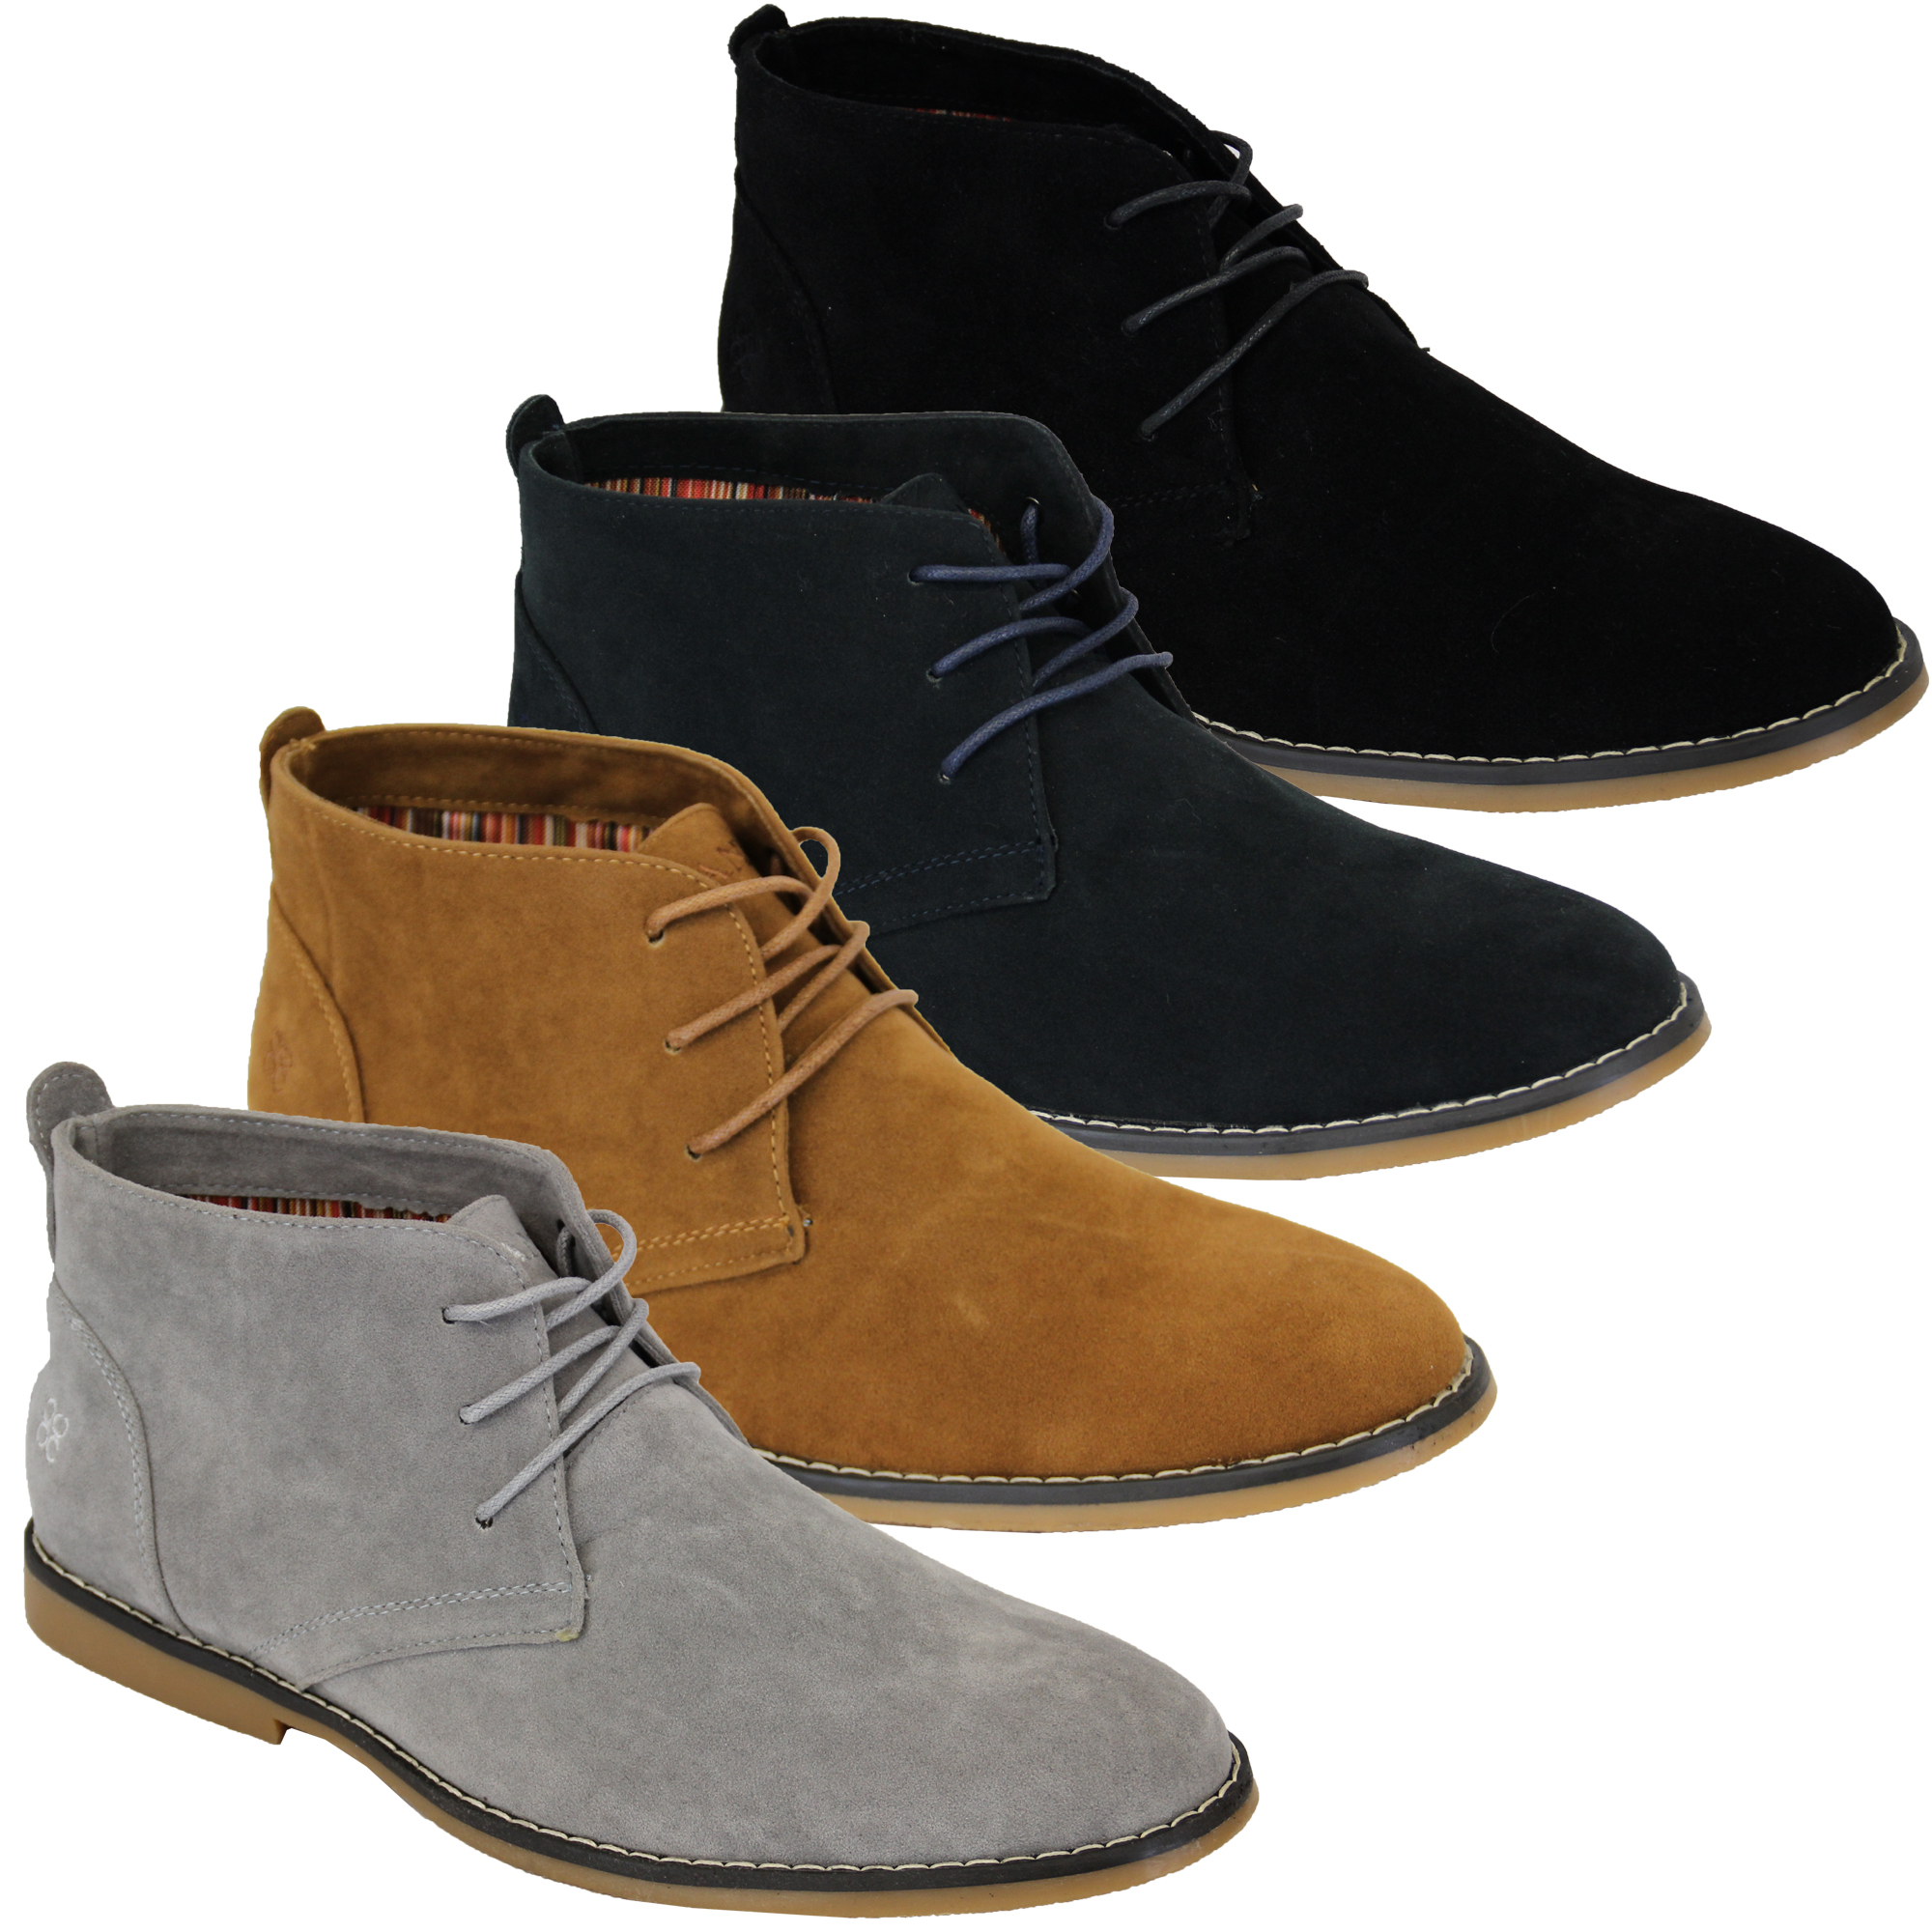 Mens Suede Look Desert Boots High Top Lace Up Shoes By Cavani | eBay